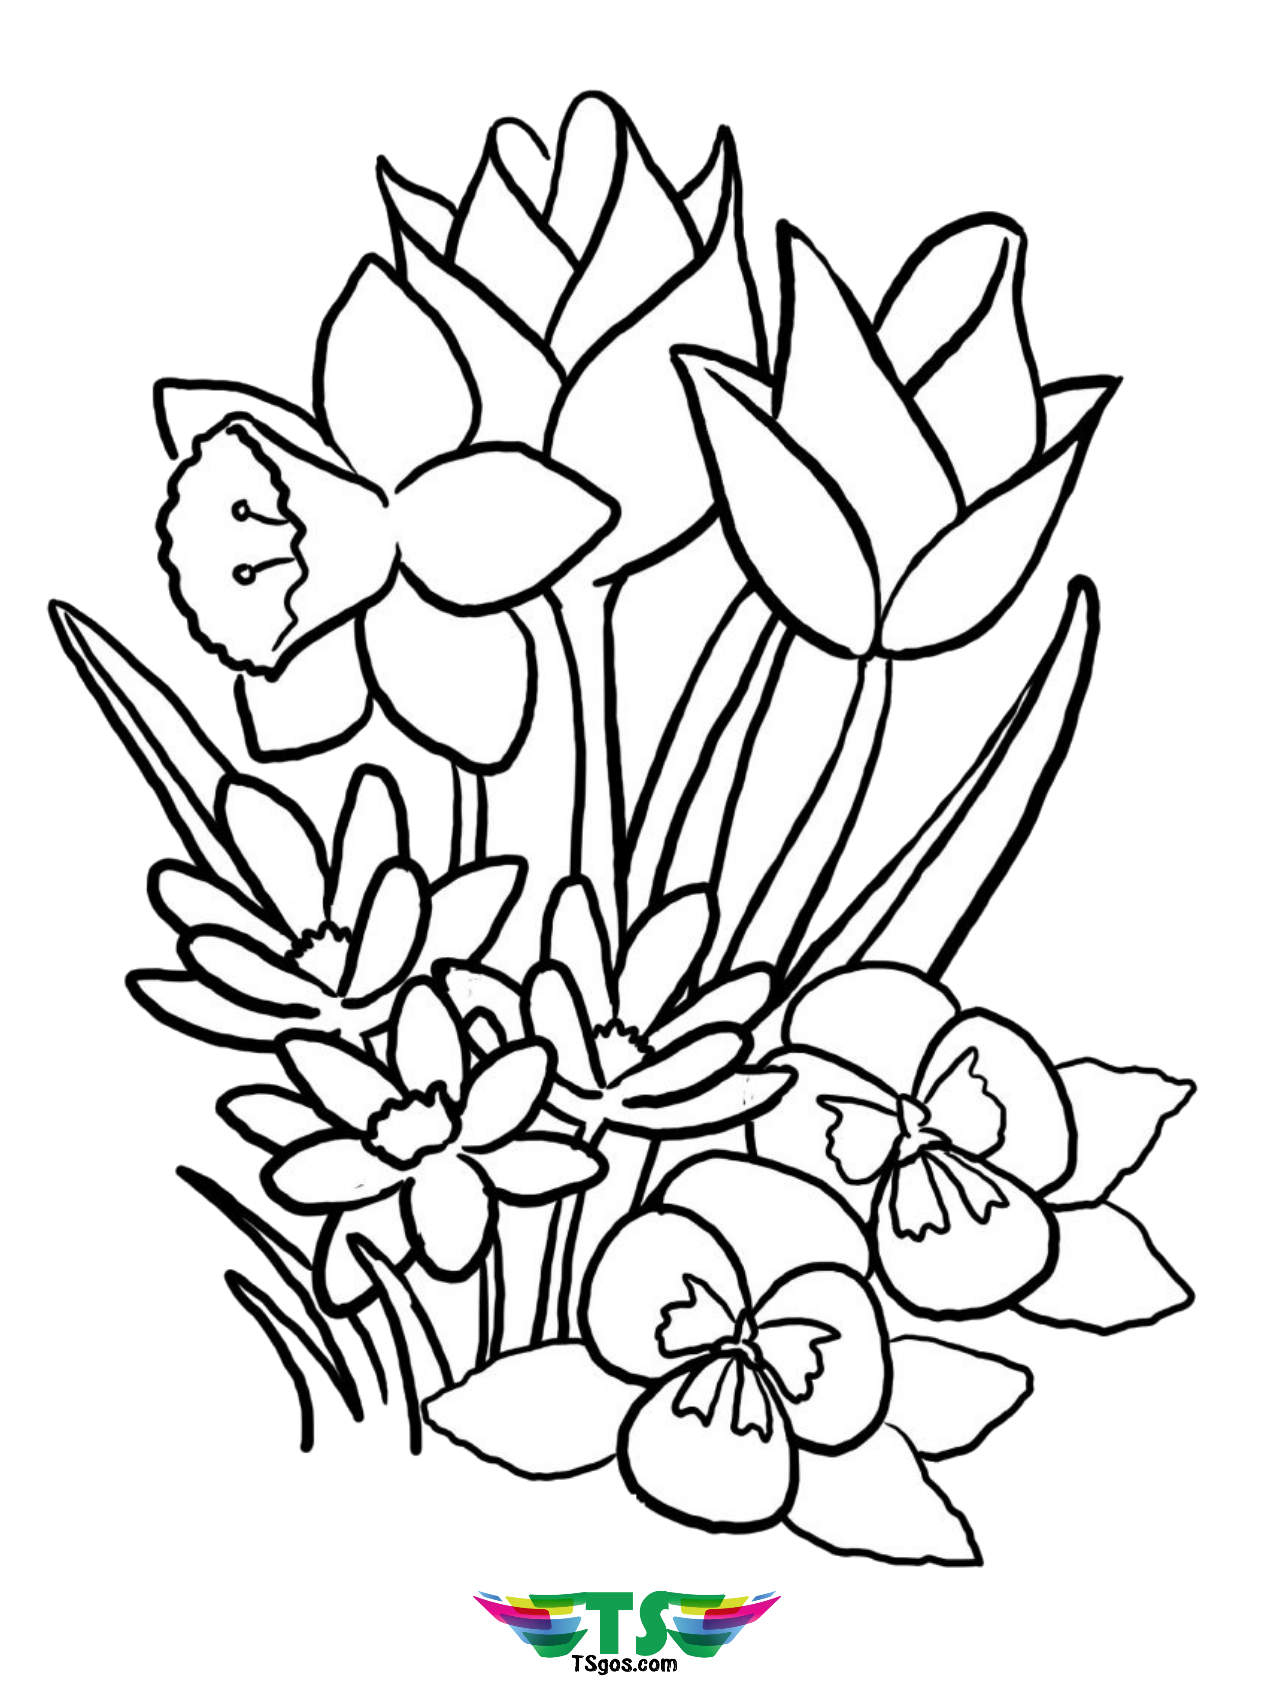 coloring pages of flowers free download to print beautiful spring flower coloring flowers of pages coloring